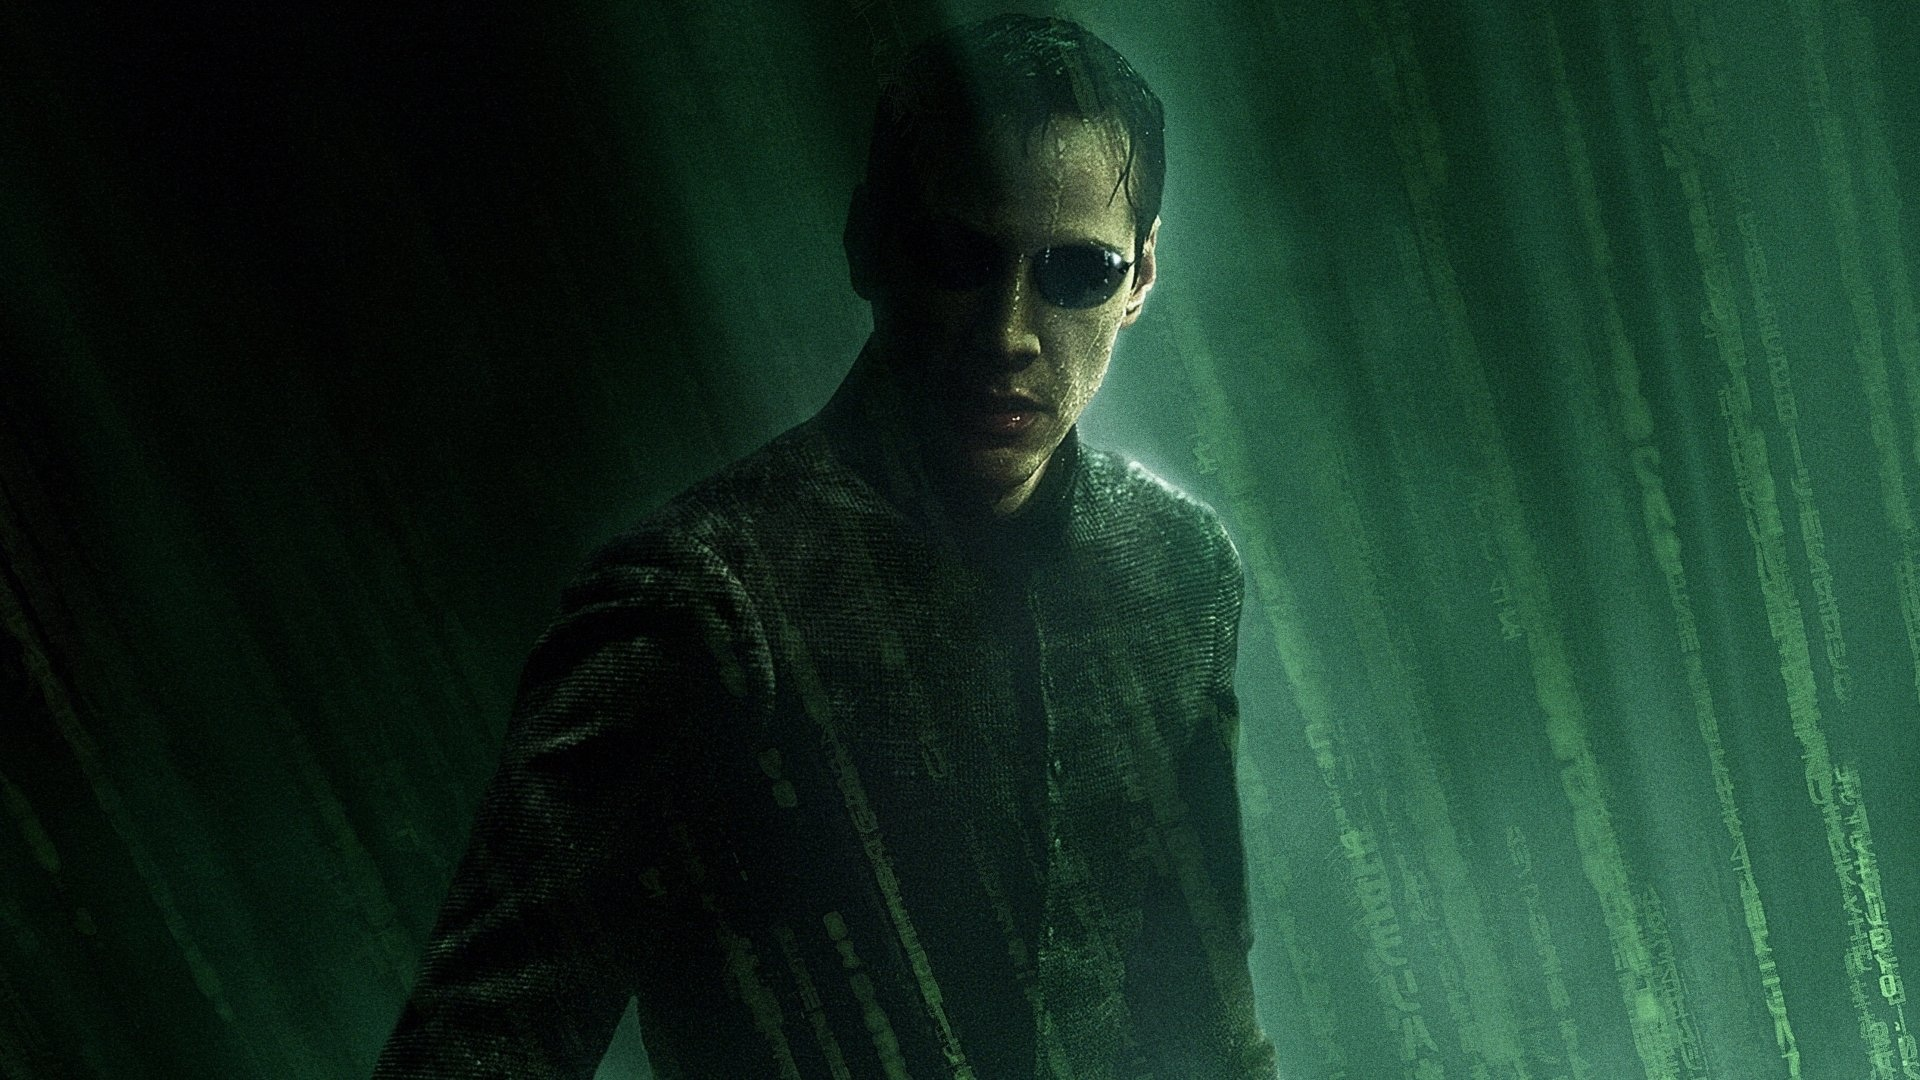 the-wachowskis-are-reportedly-set-to-direct-the-new-matrix-movie-with-michael-b-jordan-social.jpg